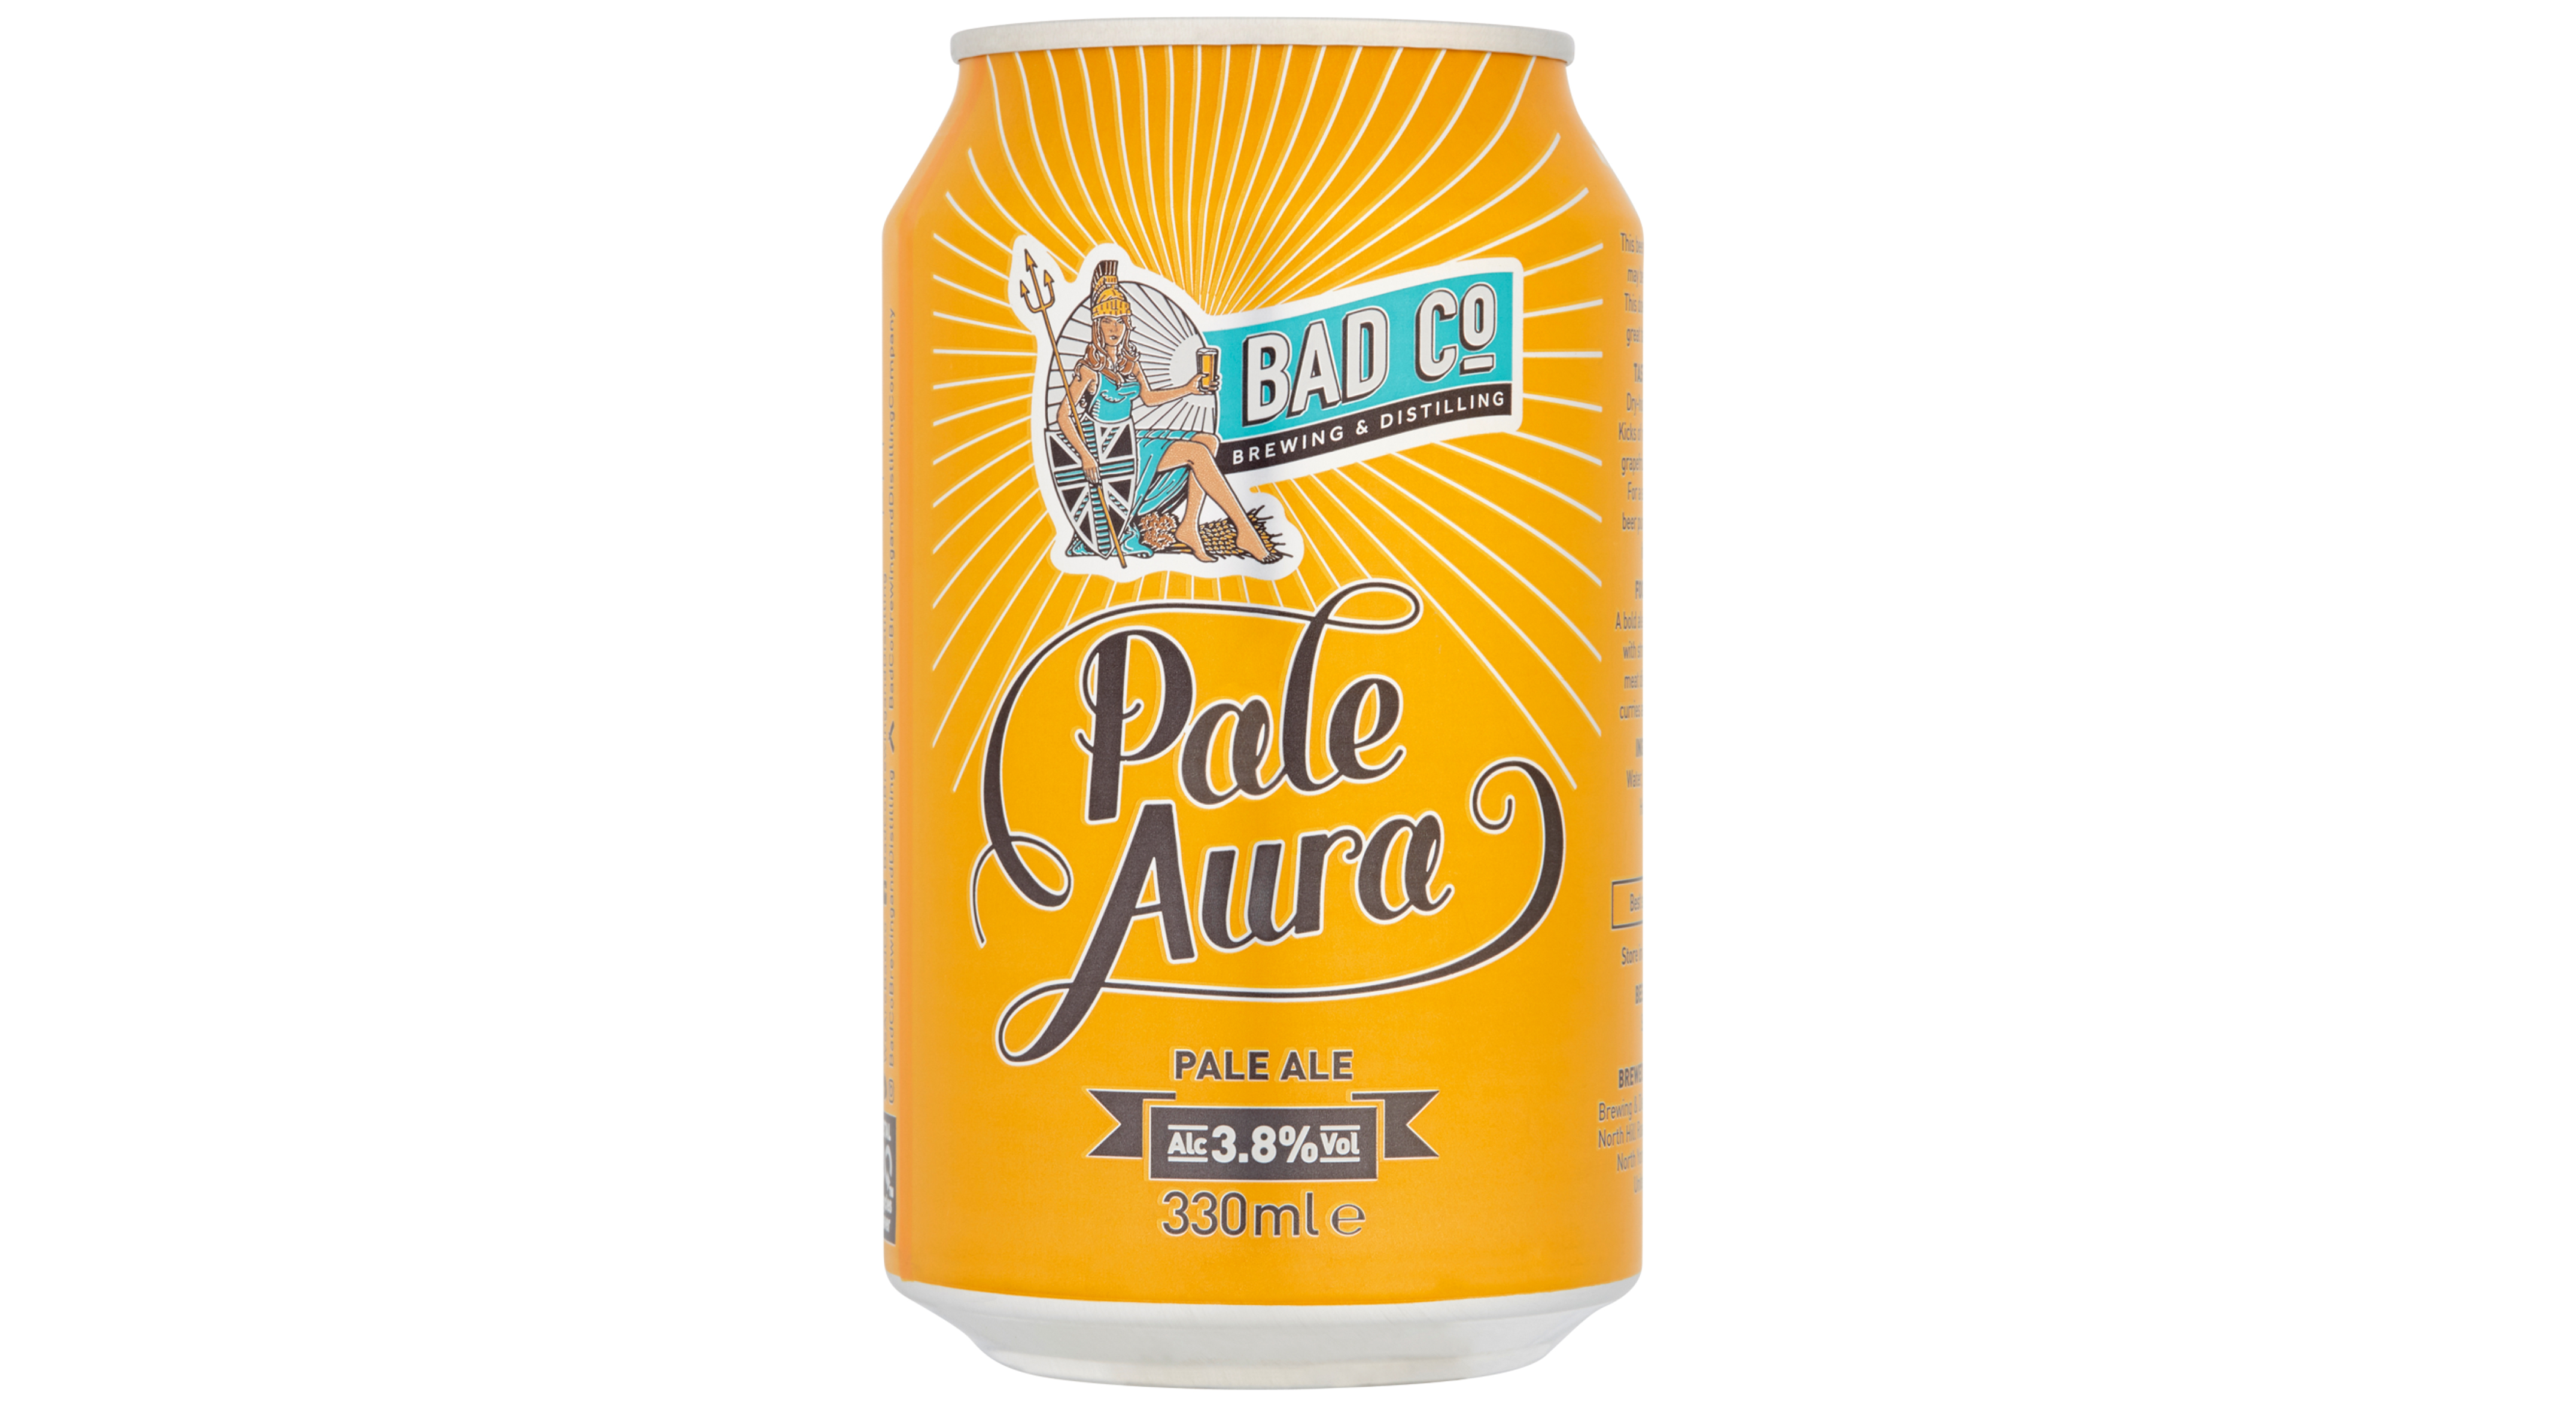 A can of Bad Co's Pale Aura, Asda